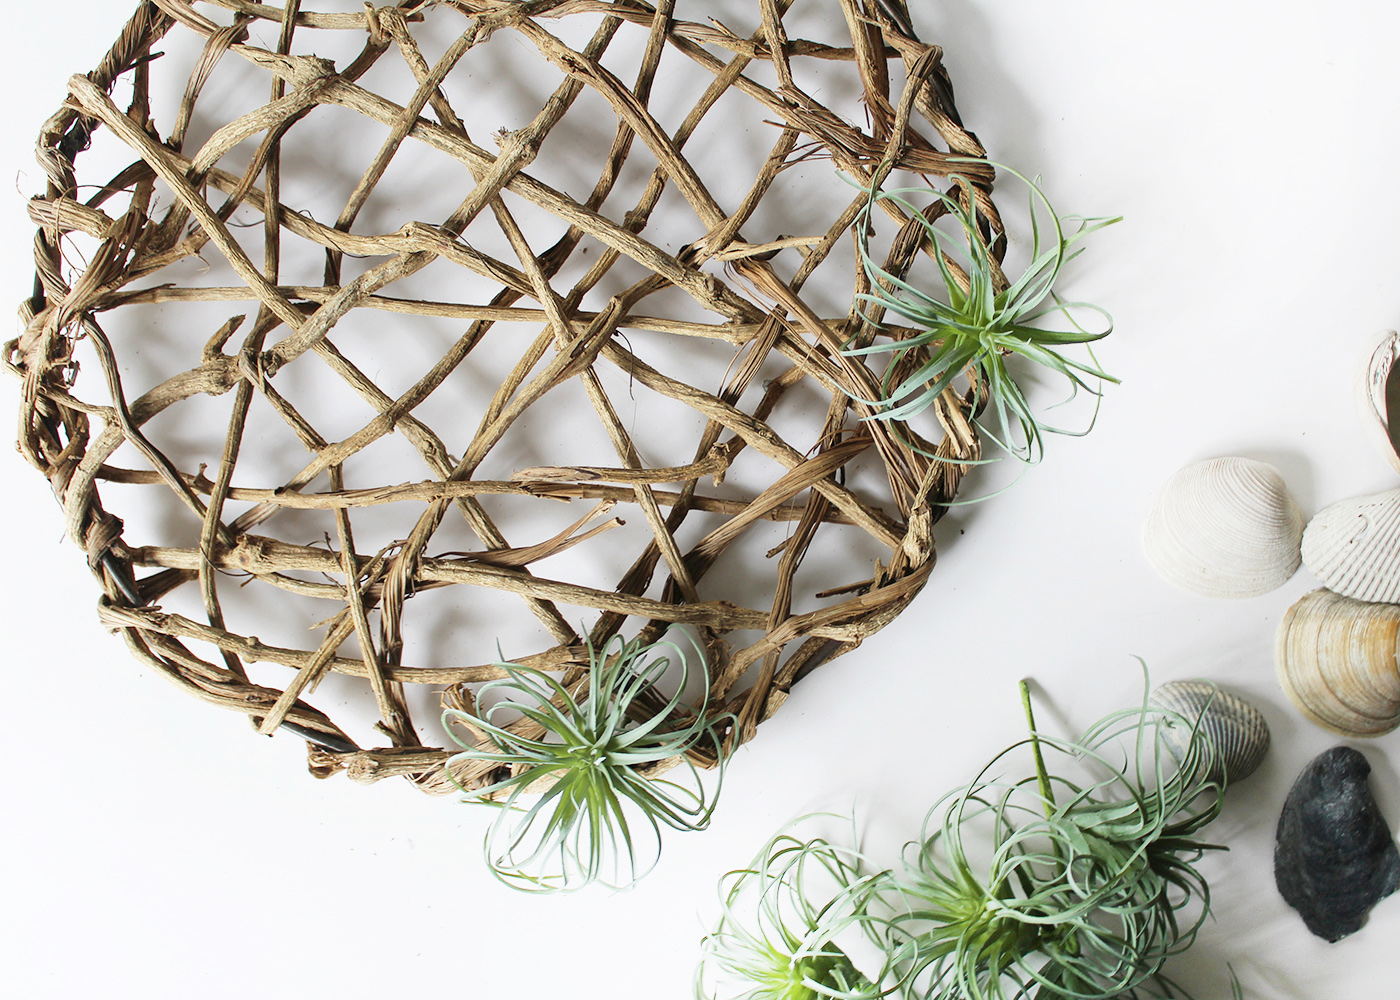 attach these two air plants first, then fill in the rest